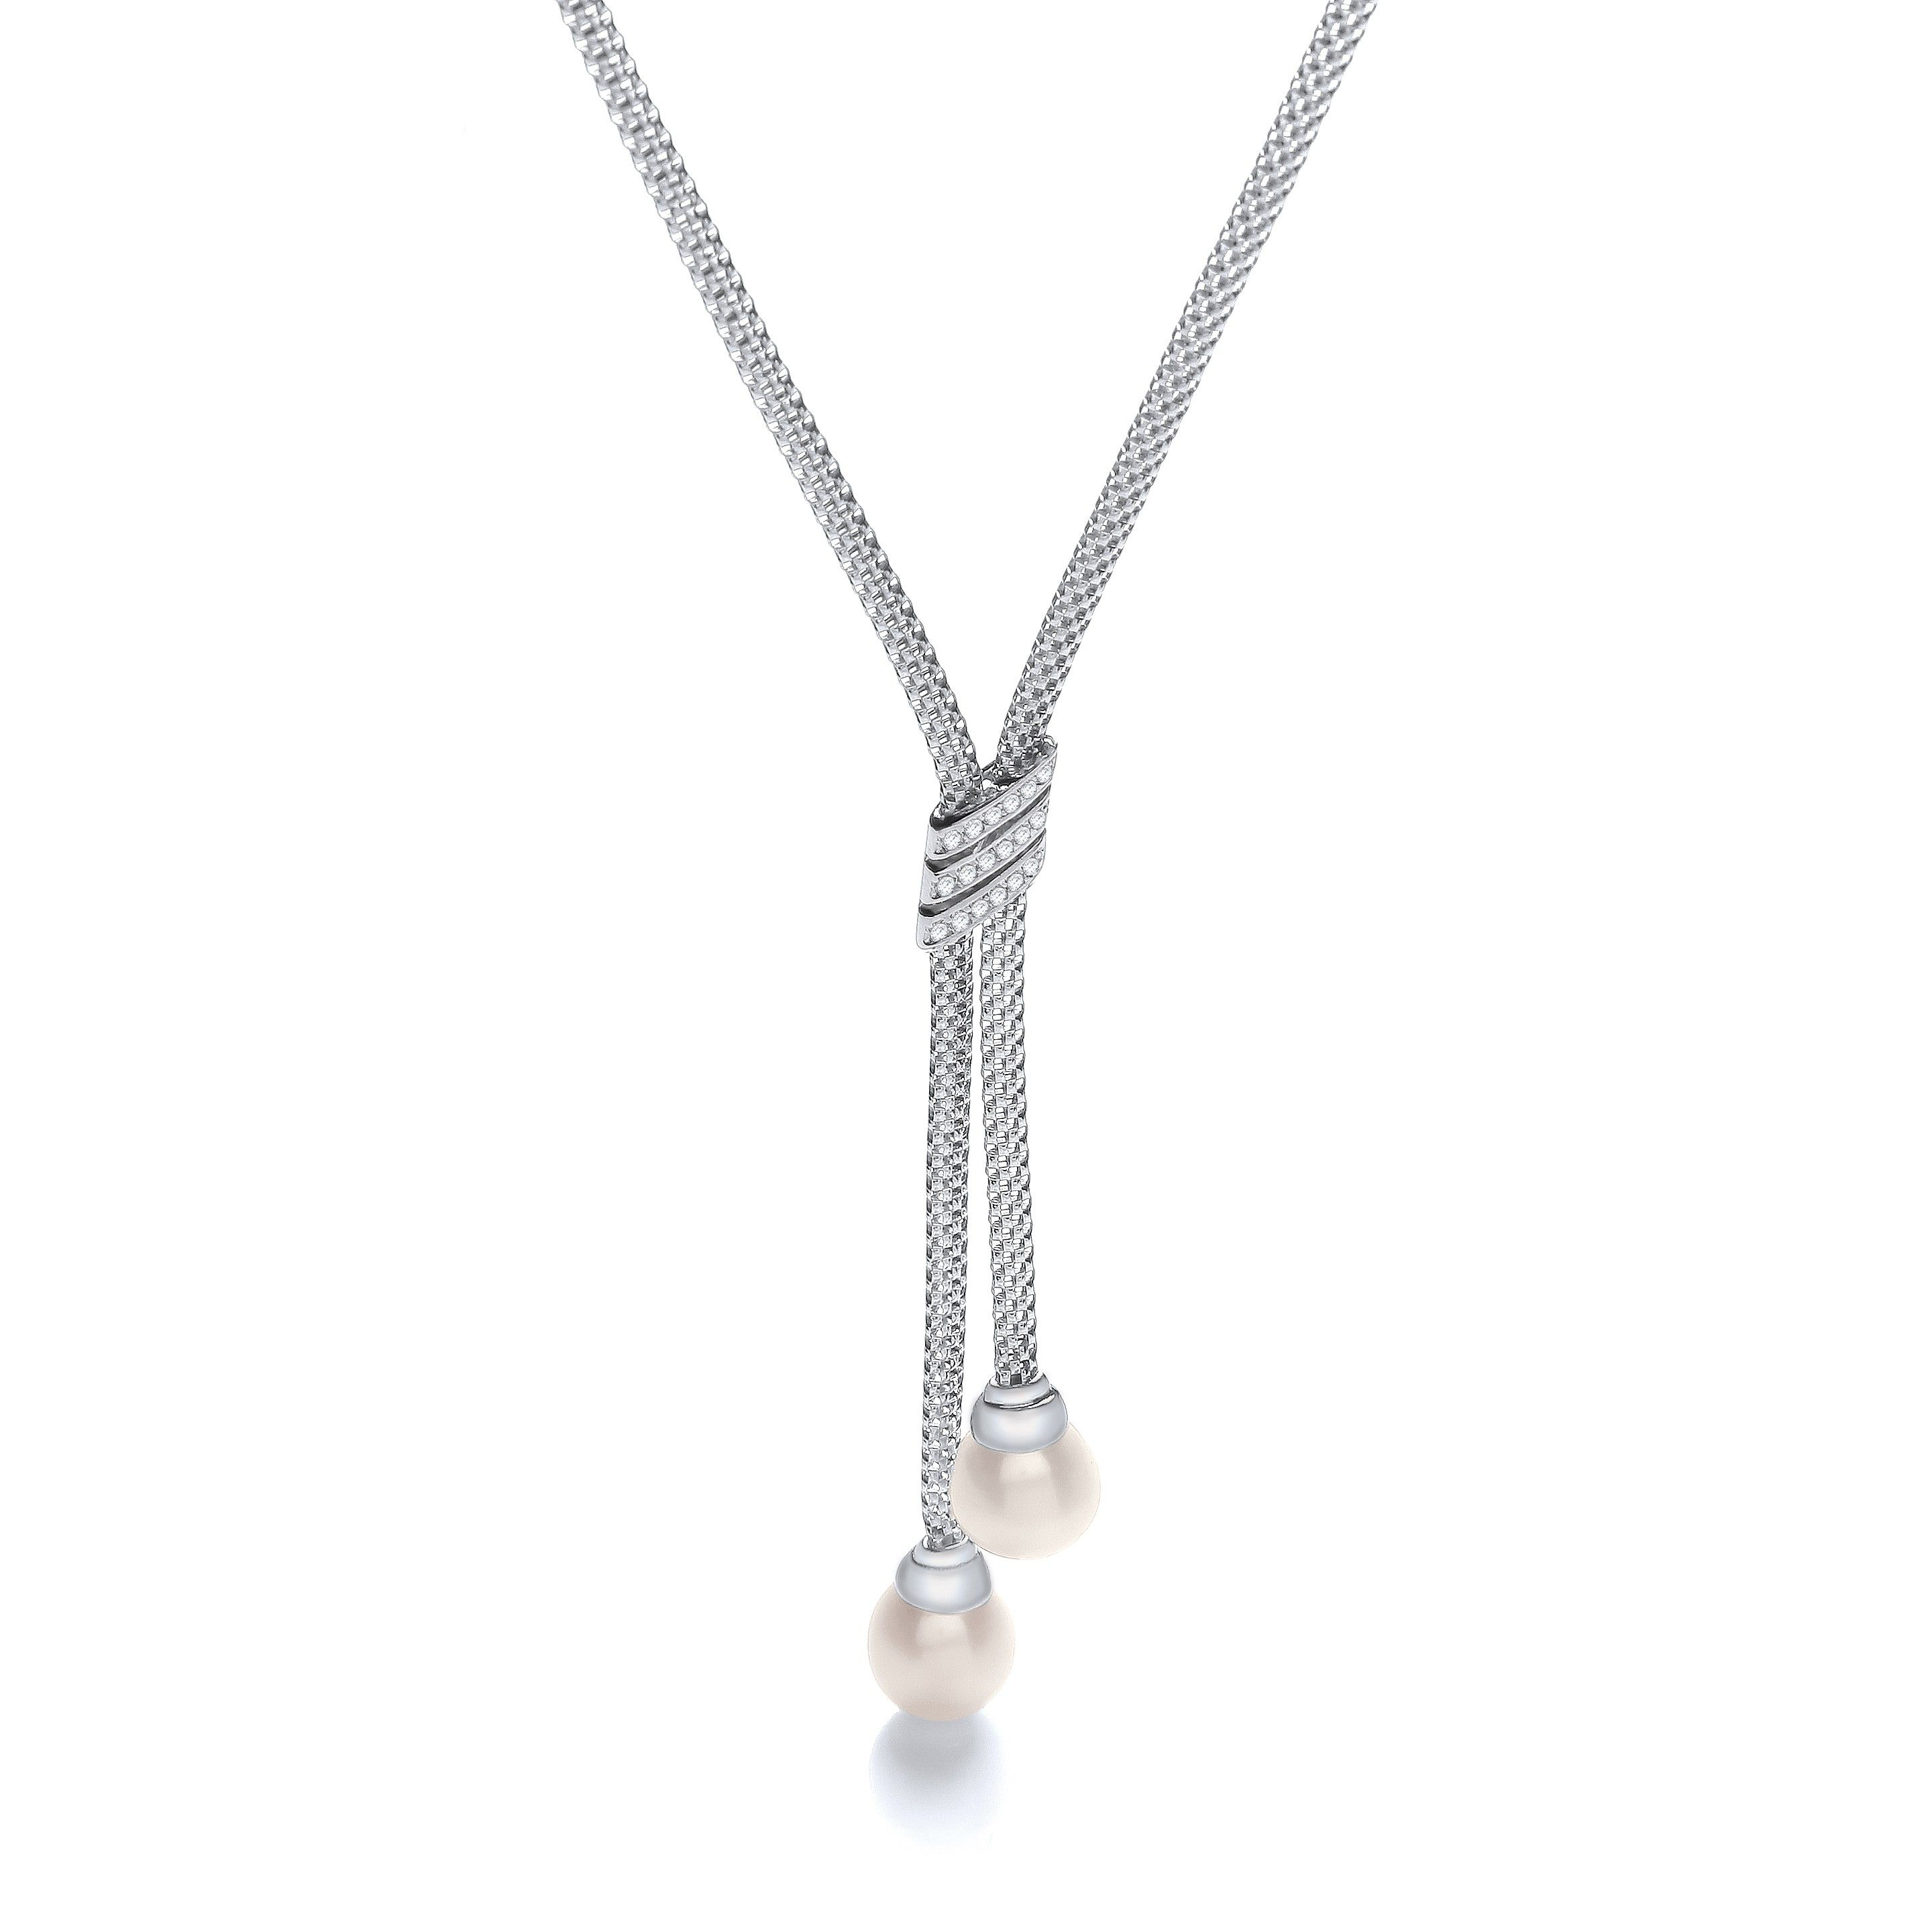 Silver Tassel Necklace Set With Cubic Zirconia 18